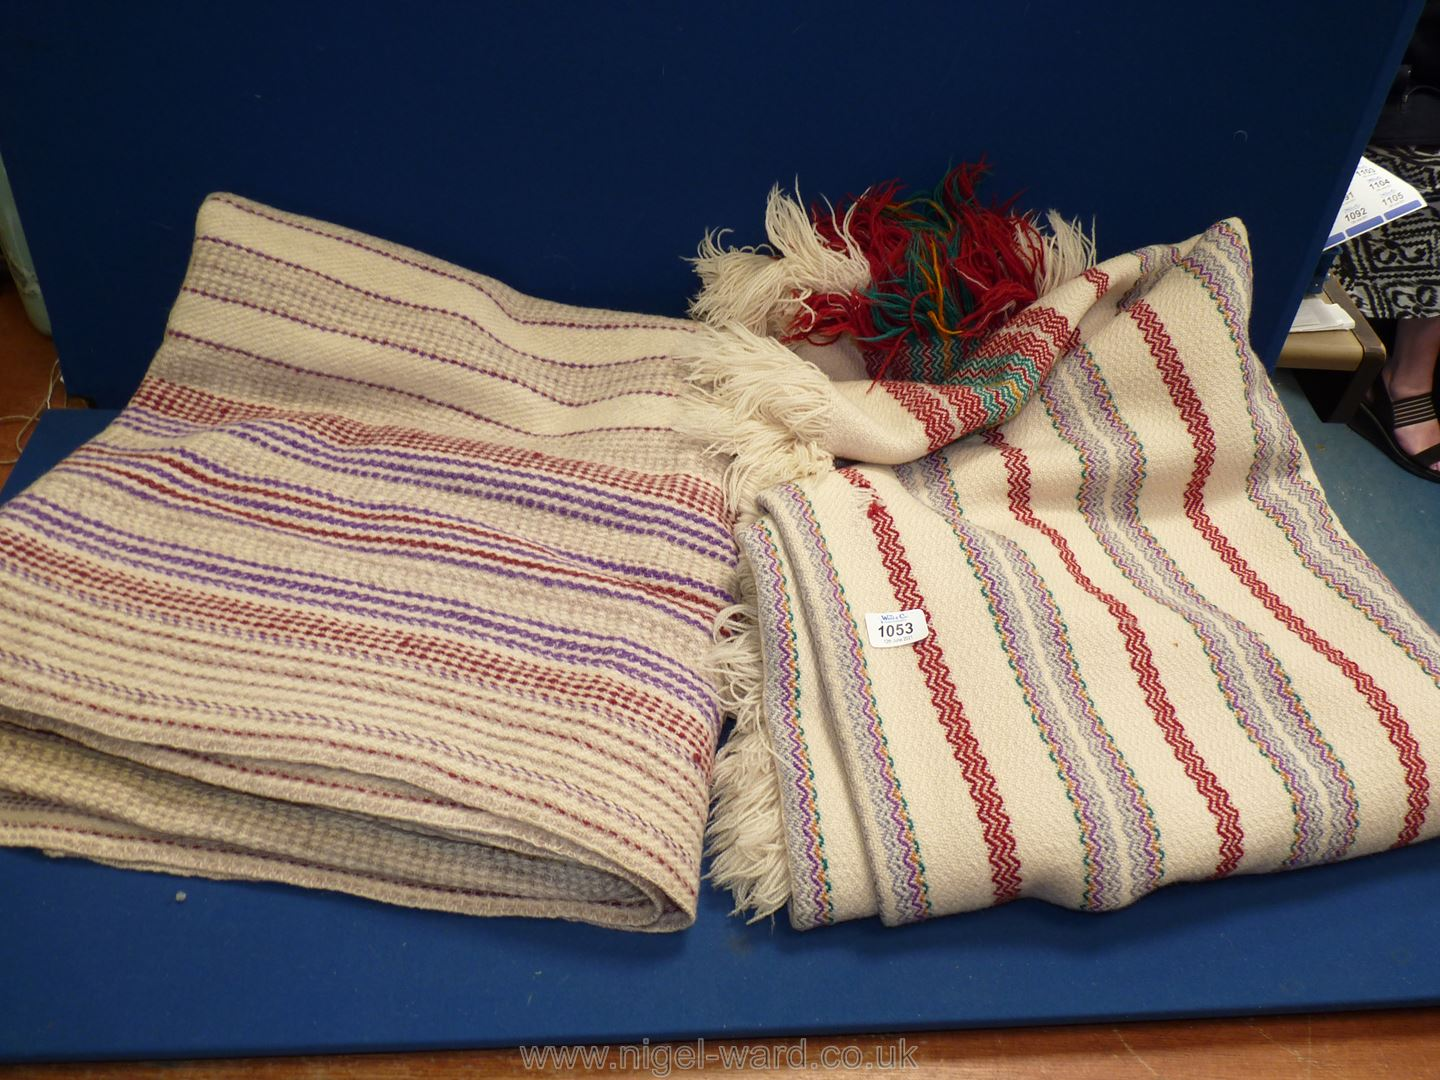 Two single Welsh Blankets, one with fringing in cream.